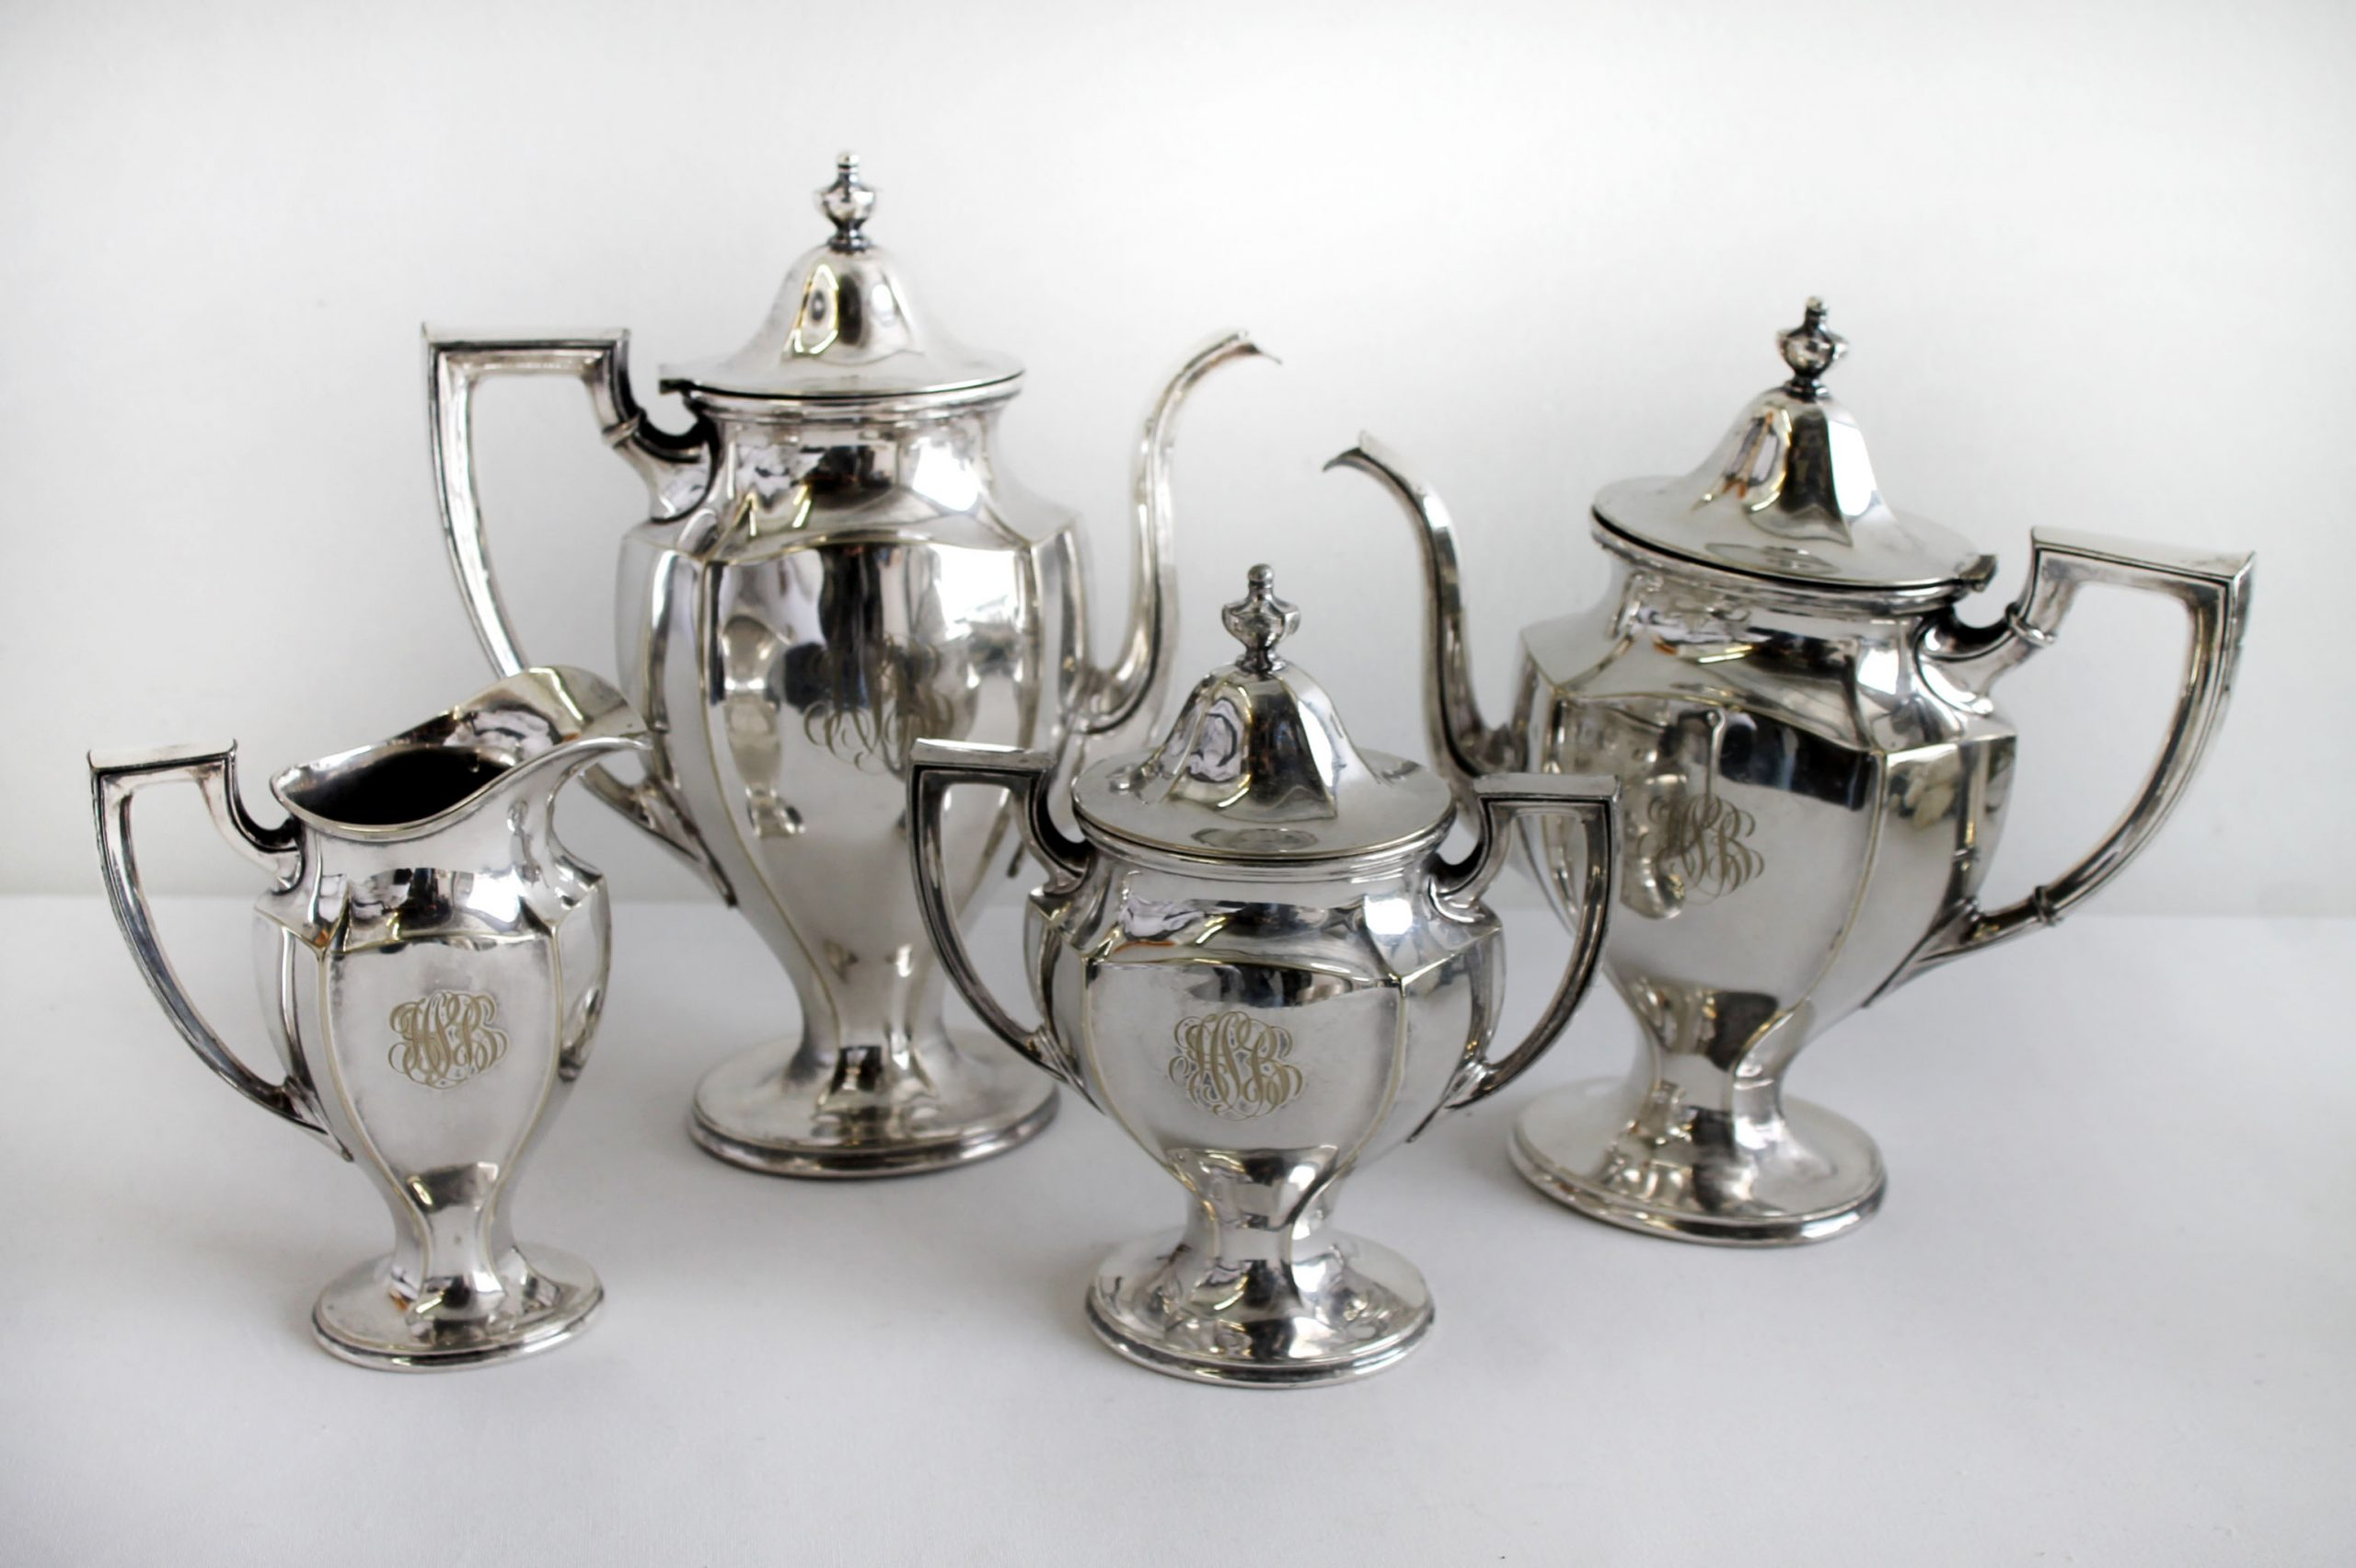 Vintage circa 1920s Gorham Monogram Silver Plate Coffee Tea Set